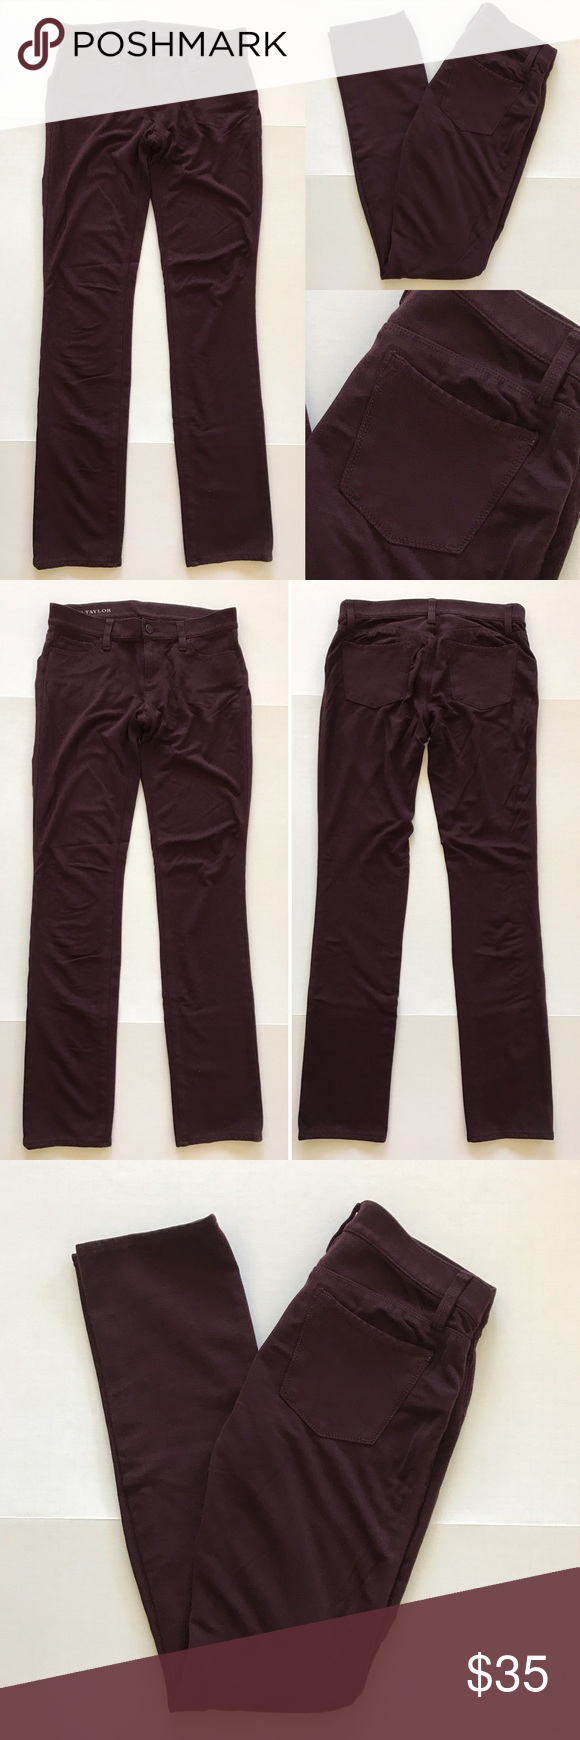 """[Ann Taylor] """"Ponte Skinny"""" women's pants 4 [Ann Taylor] """"Ponte Skinny"""" women's pants 4 •🆕listing •good pre-owned condition •burgundy color •length 32.5"""" •flat front waist measures about 15.5"""" •may run a size bigger, may fit size 6 best •material 68% rayon 28% nylon 4% spandex, most comfortable material •good stretch to hug curves •offers and bundles welcomed using the features Ann Taylor Pants"""